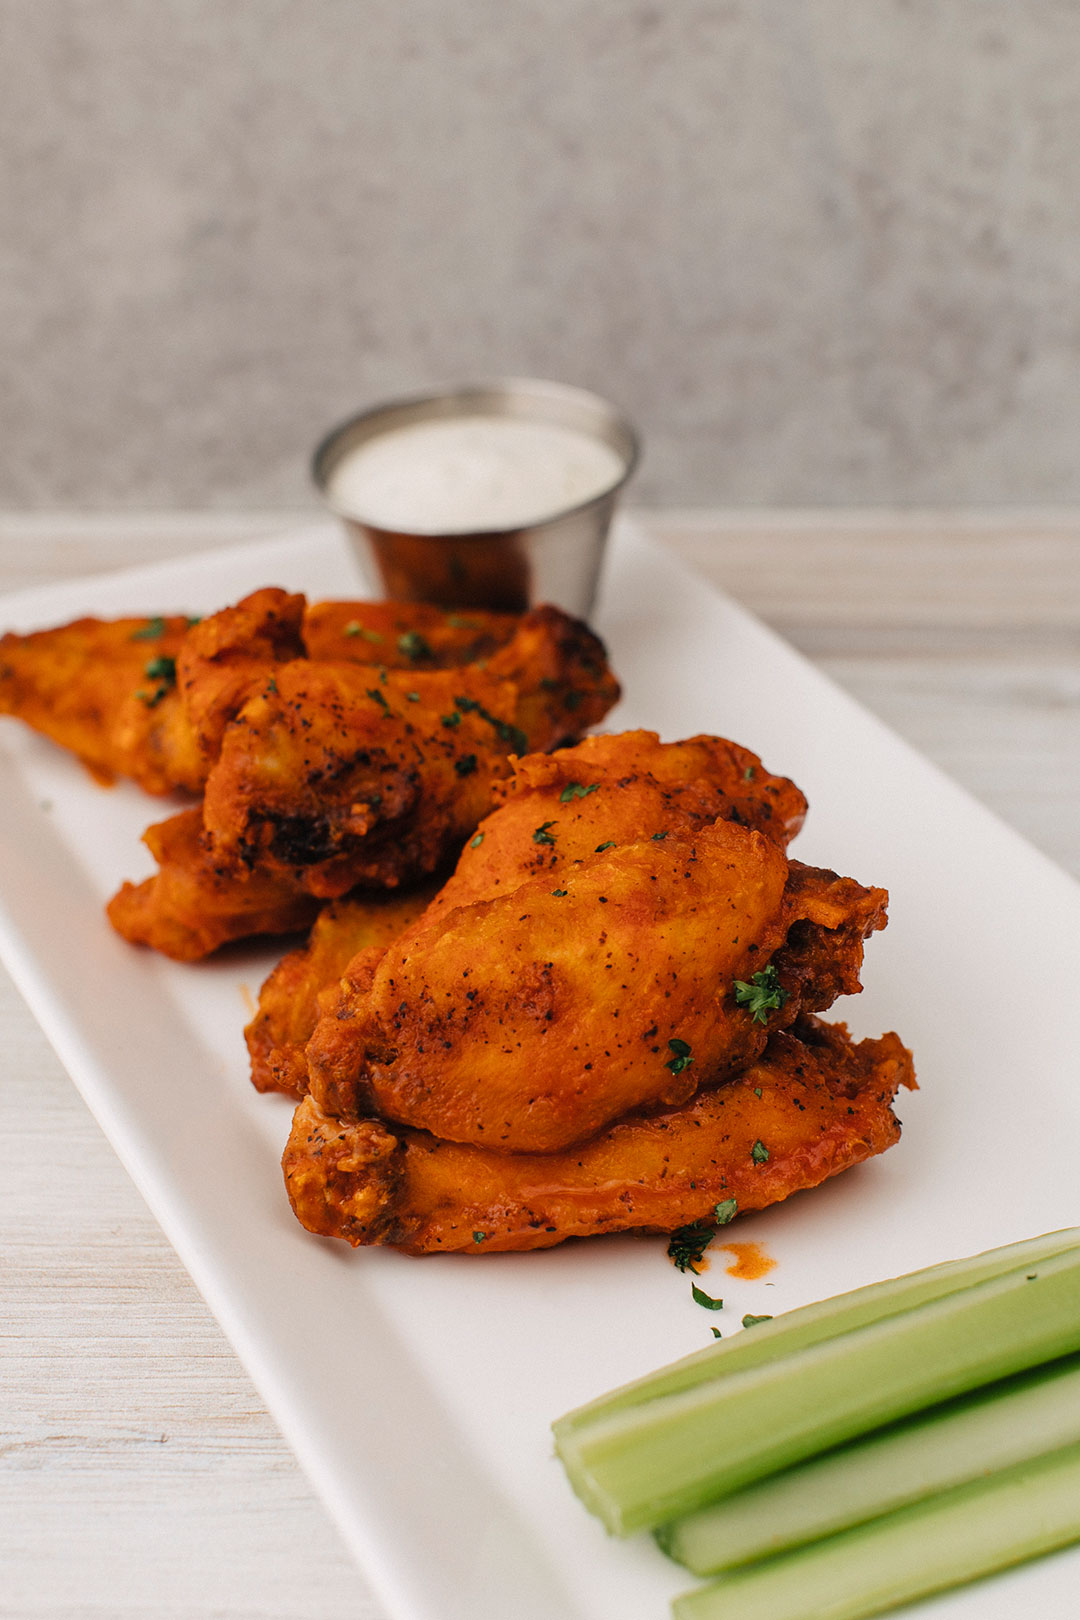 Join us for Happy Hour Hot Wings